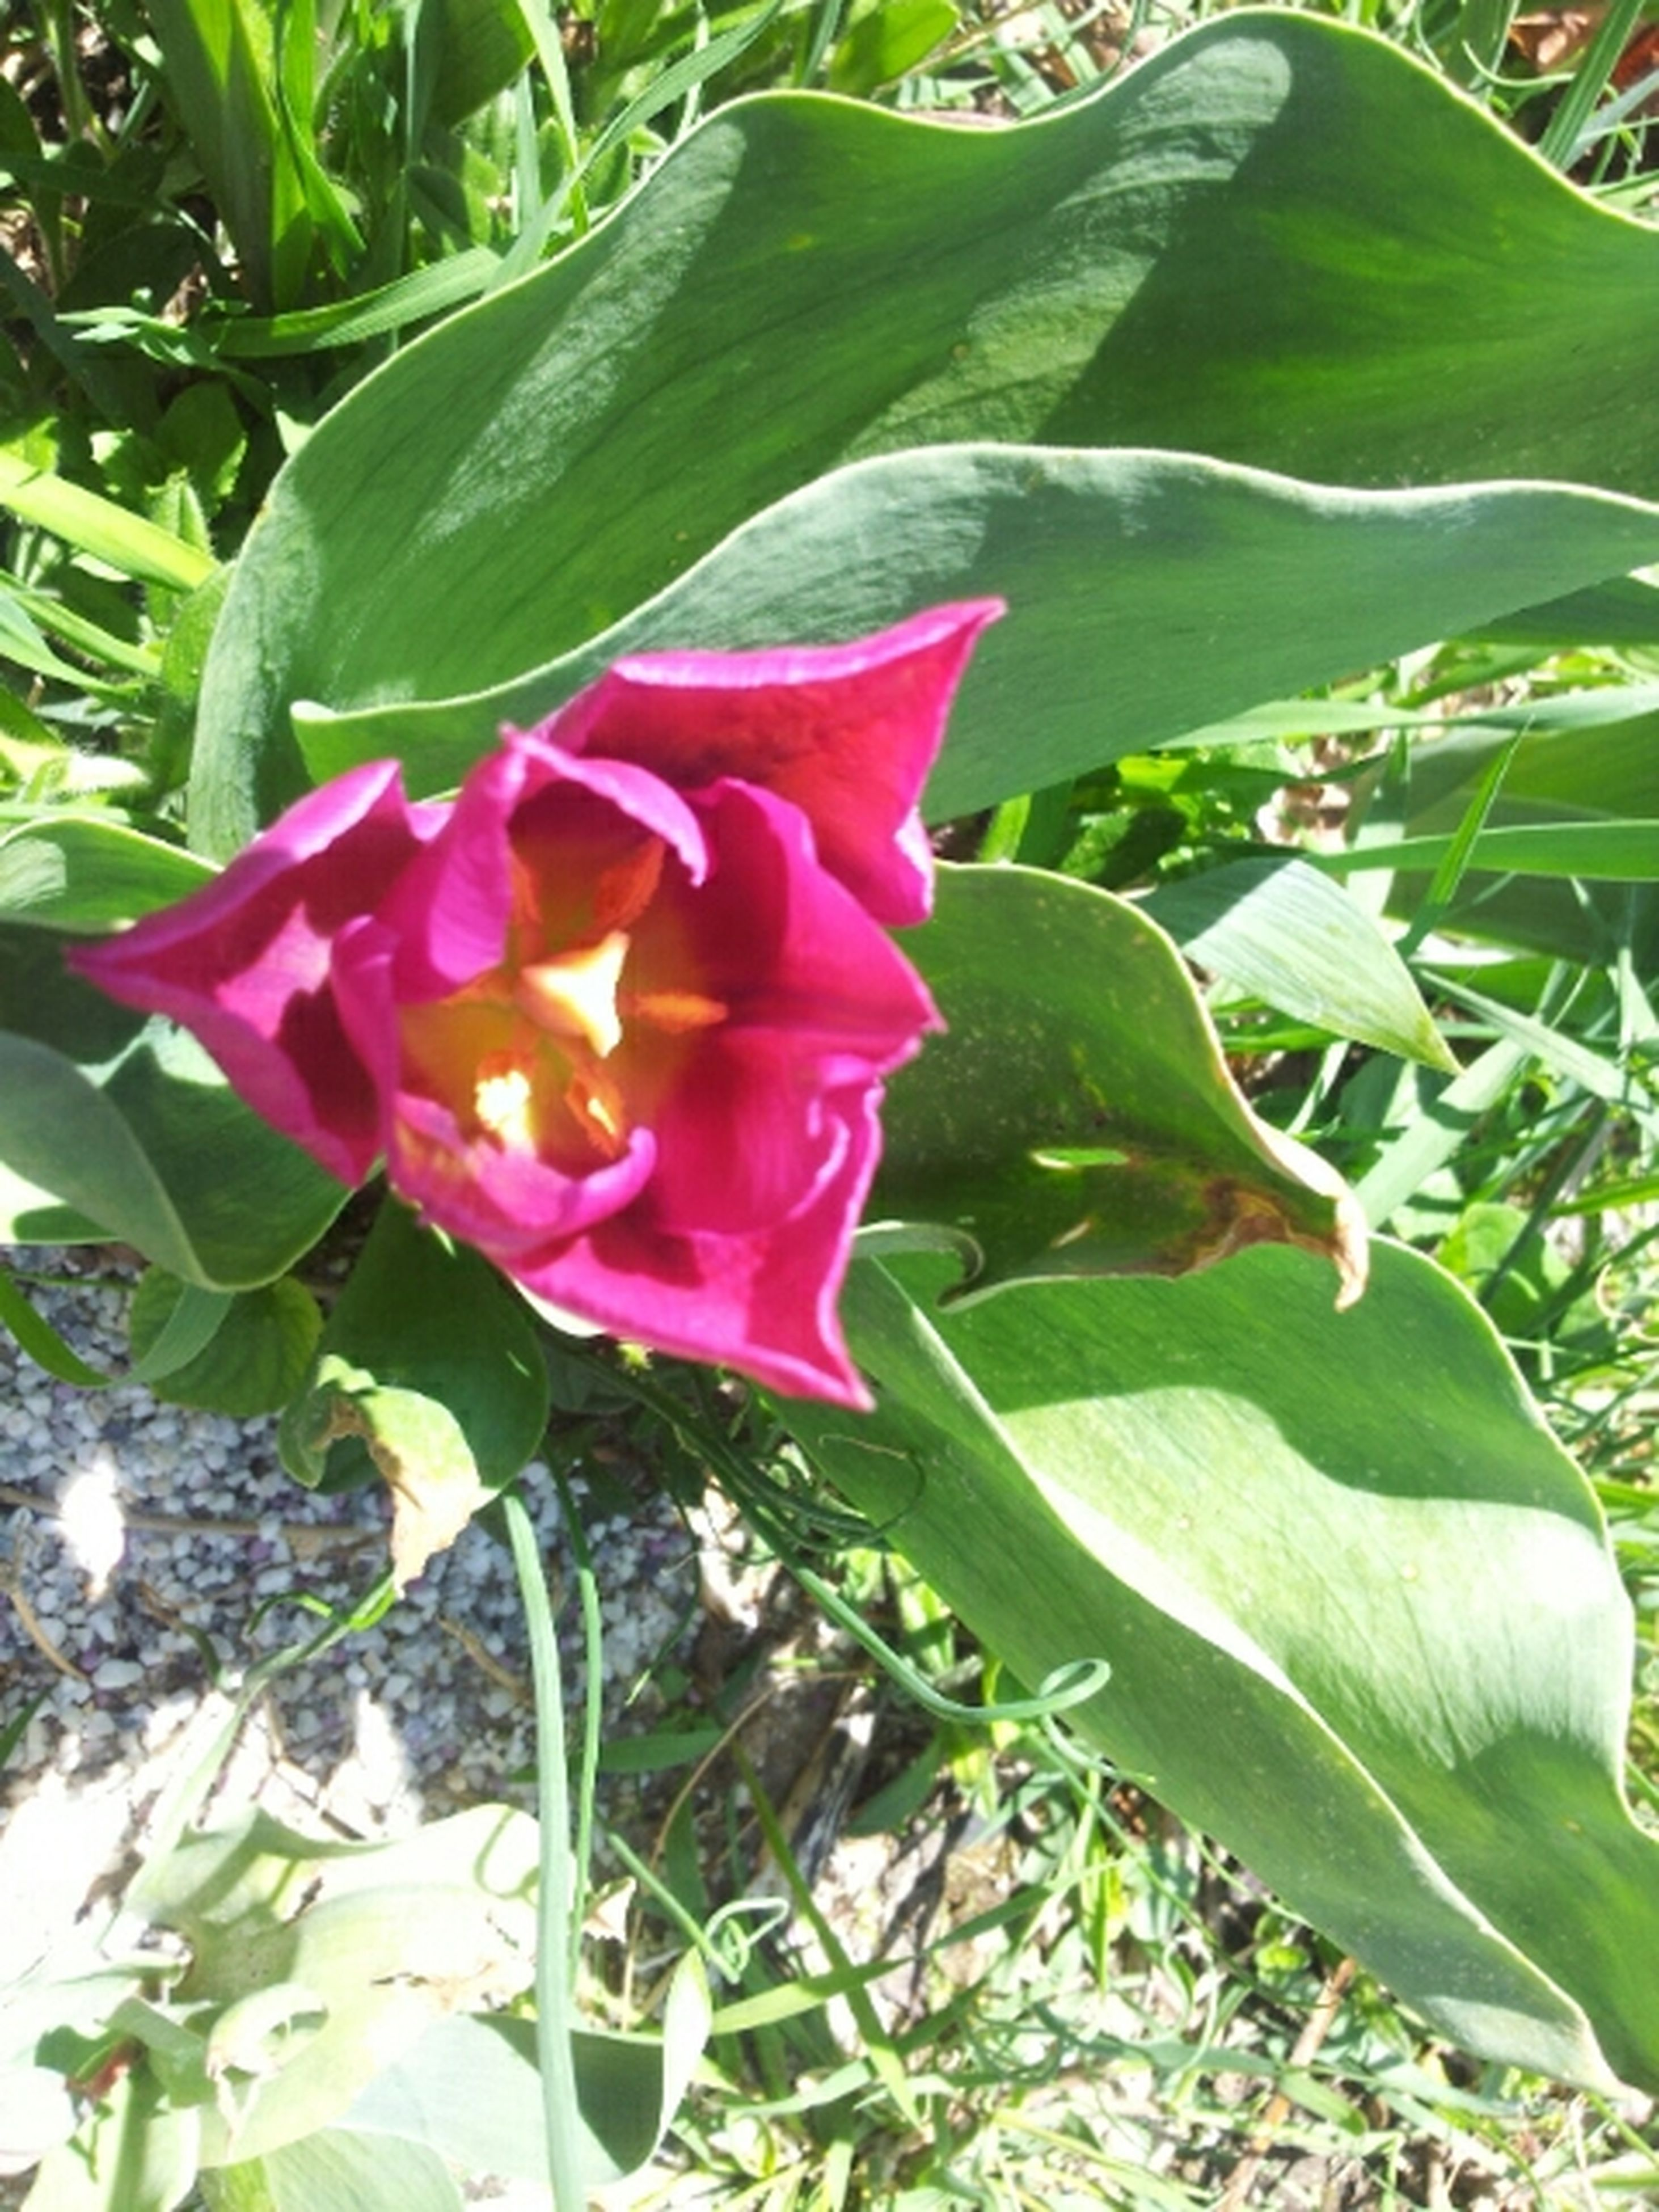 flower, freshness, growth, petal, leaf, fragility, beauty in nature, flower head, nature, plant, green color, blooming, pink color, tulip, close-up, rose - flower, blossom, in bloom, day, outdoors